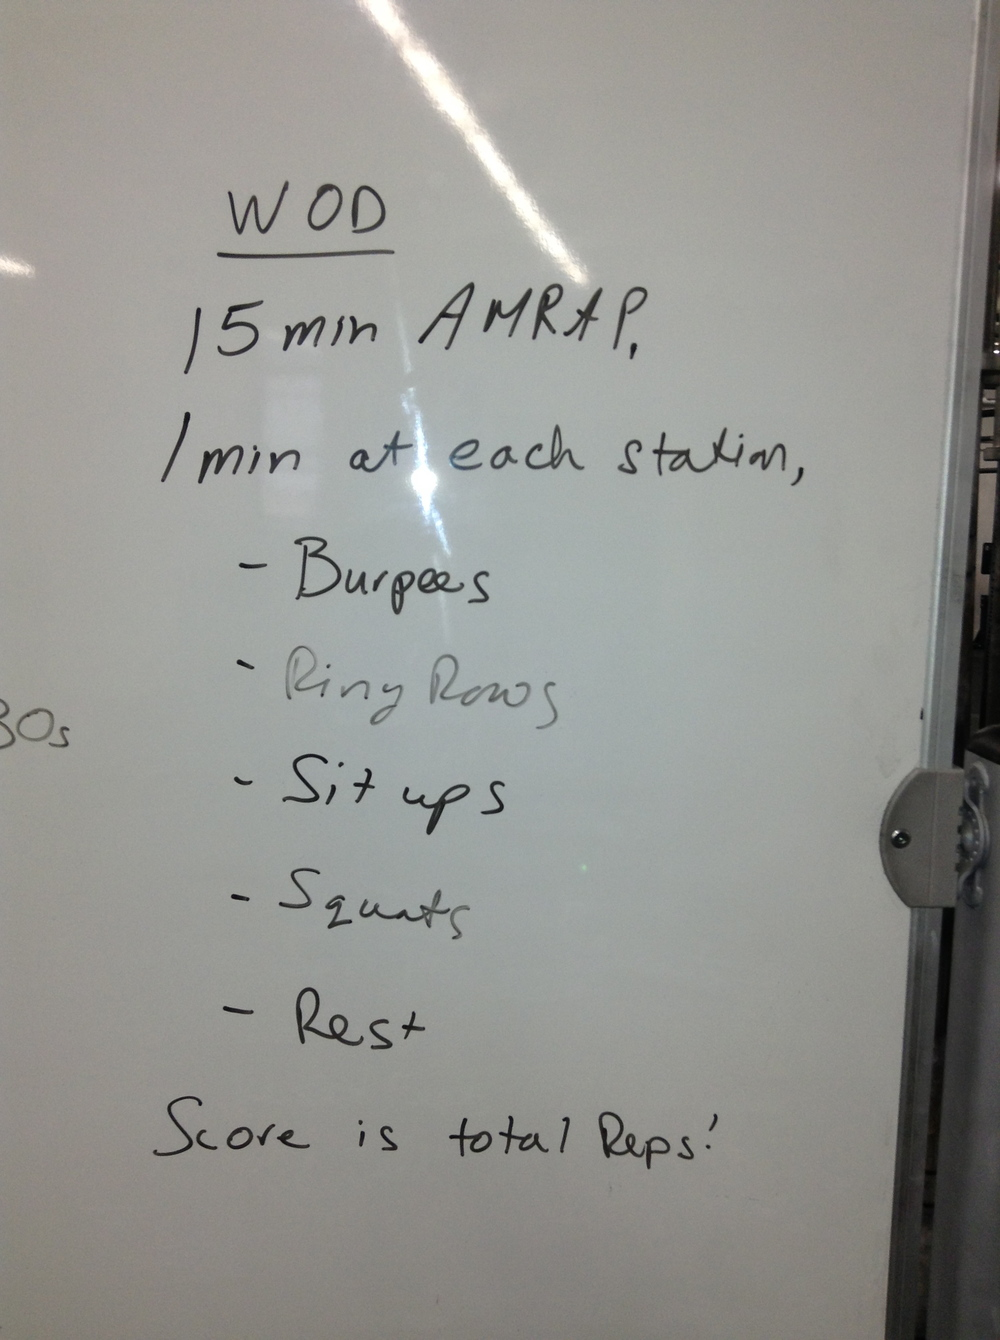 I SMASHED the WOD!